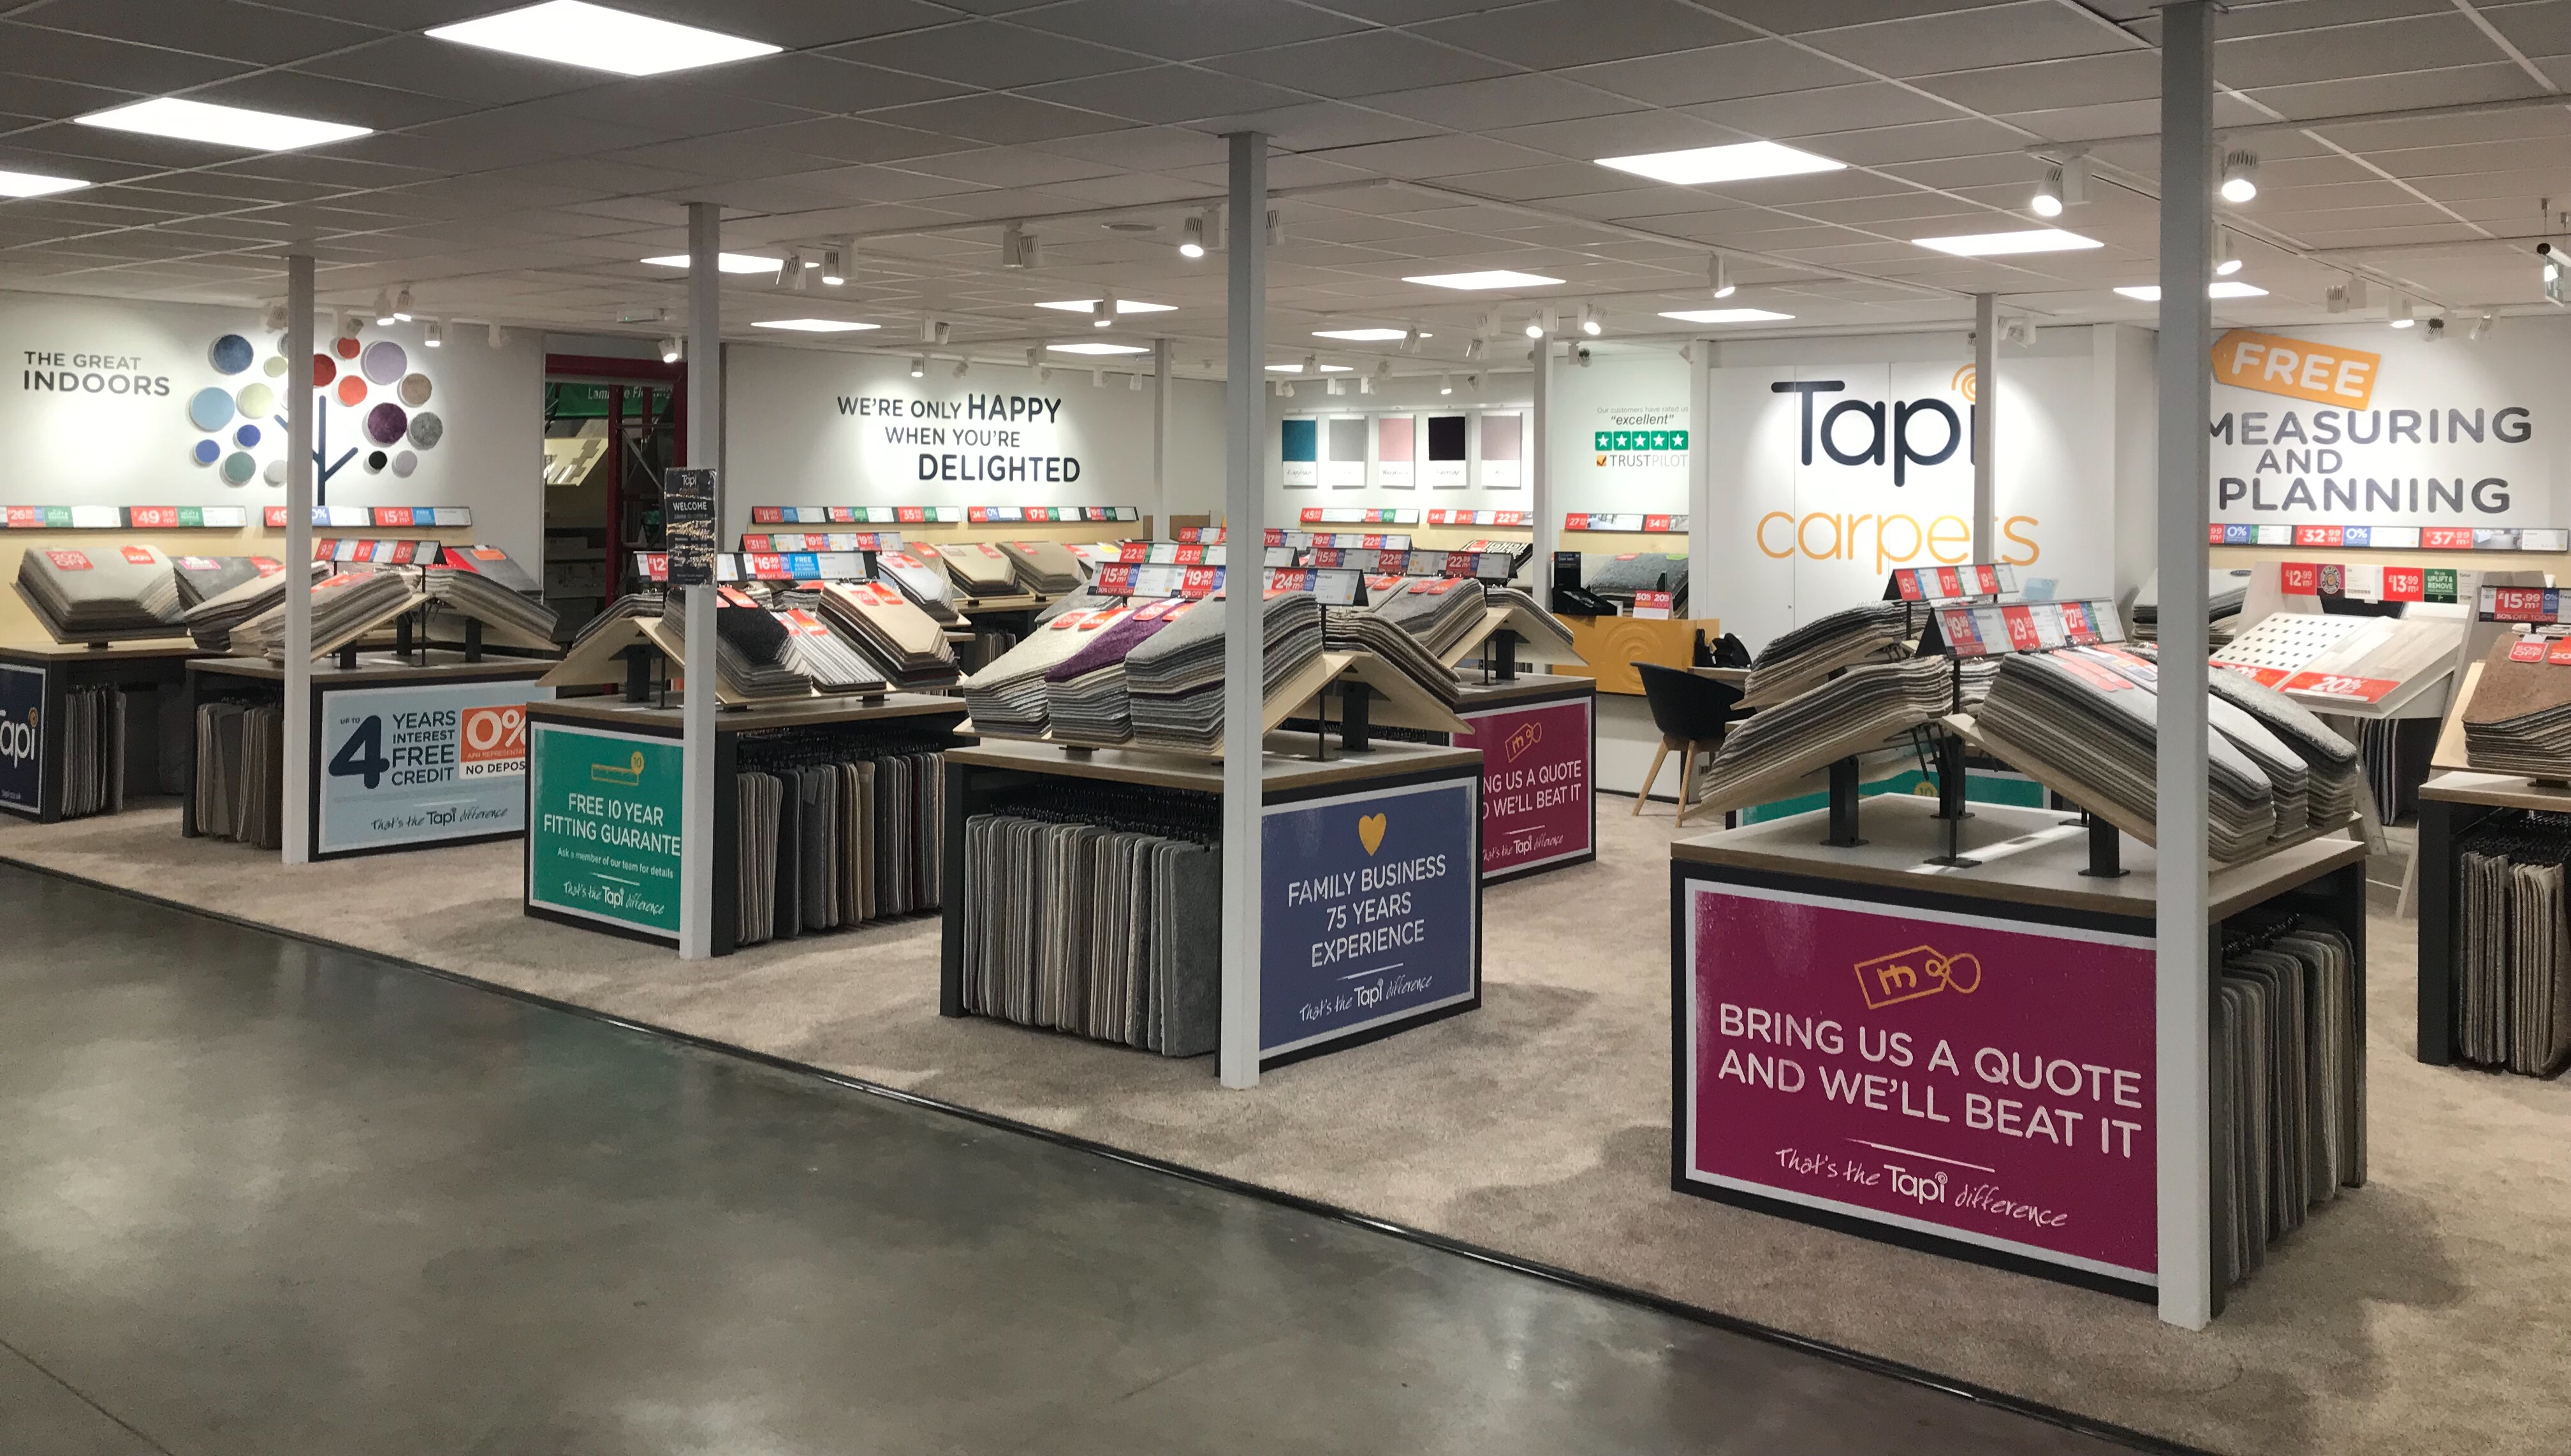 Tapi Carpets within Rayleigh Weir Homebase